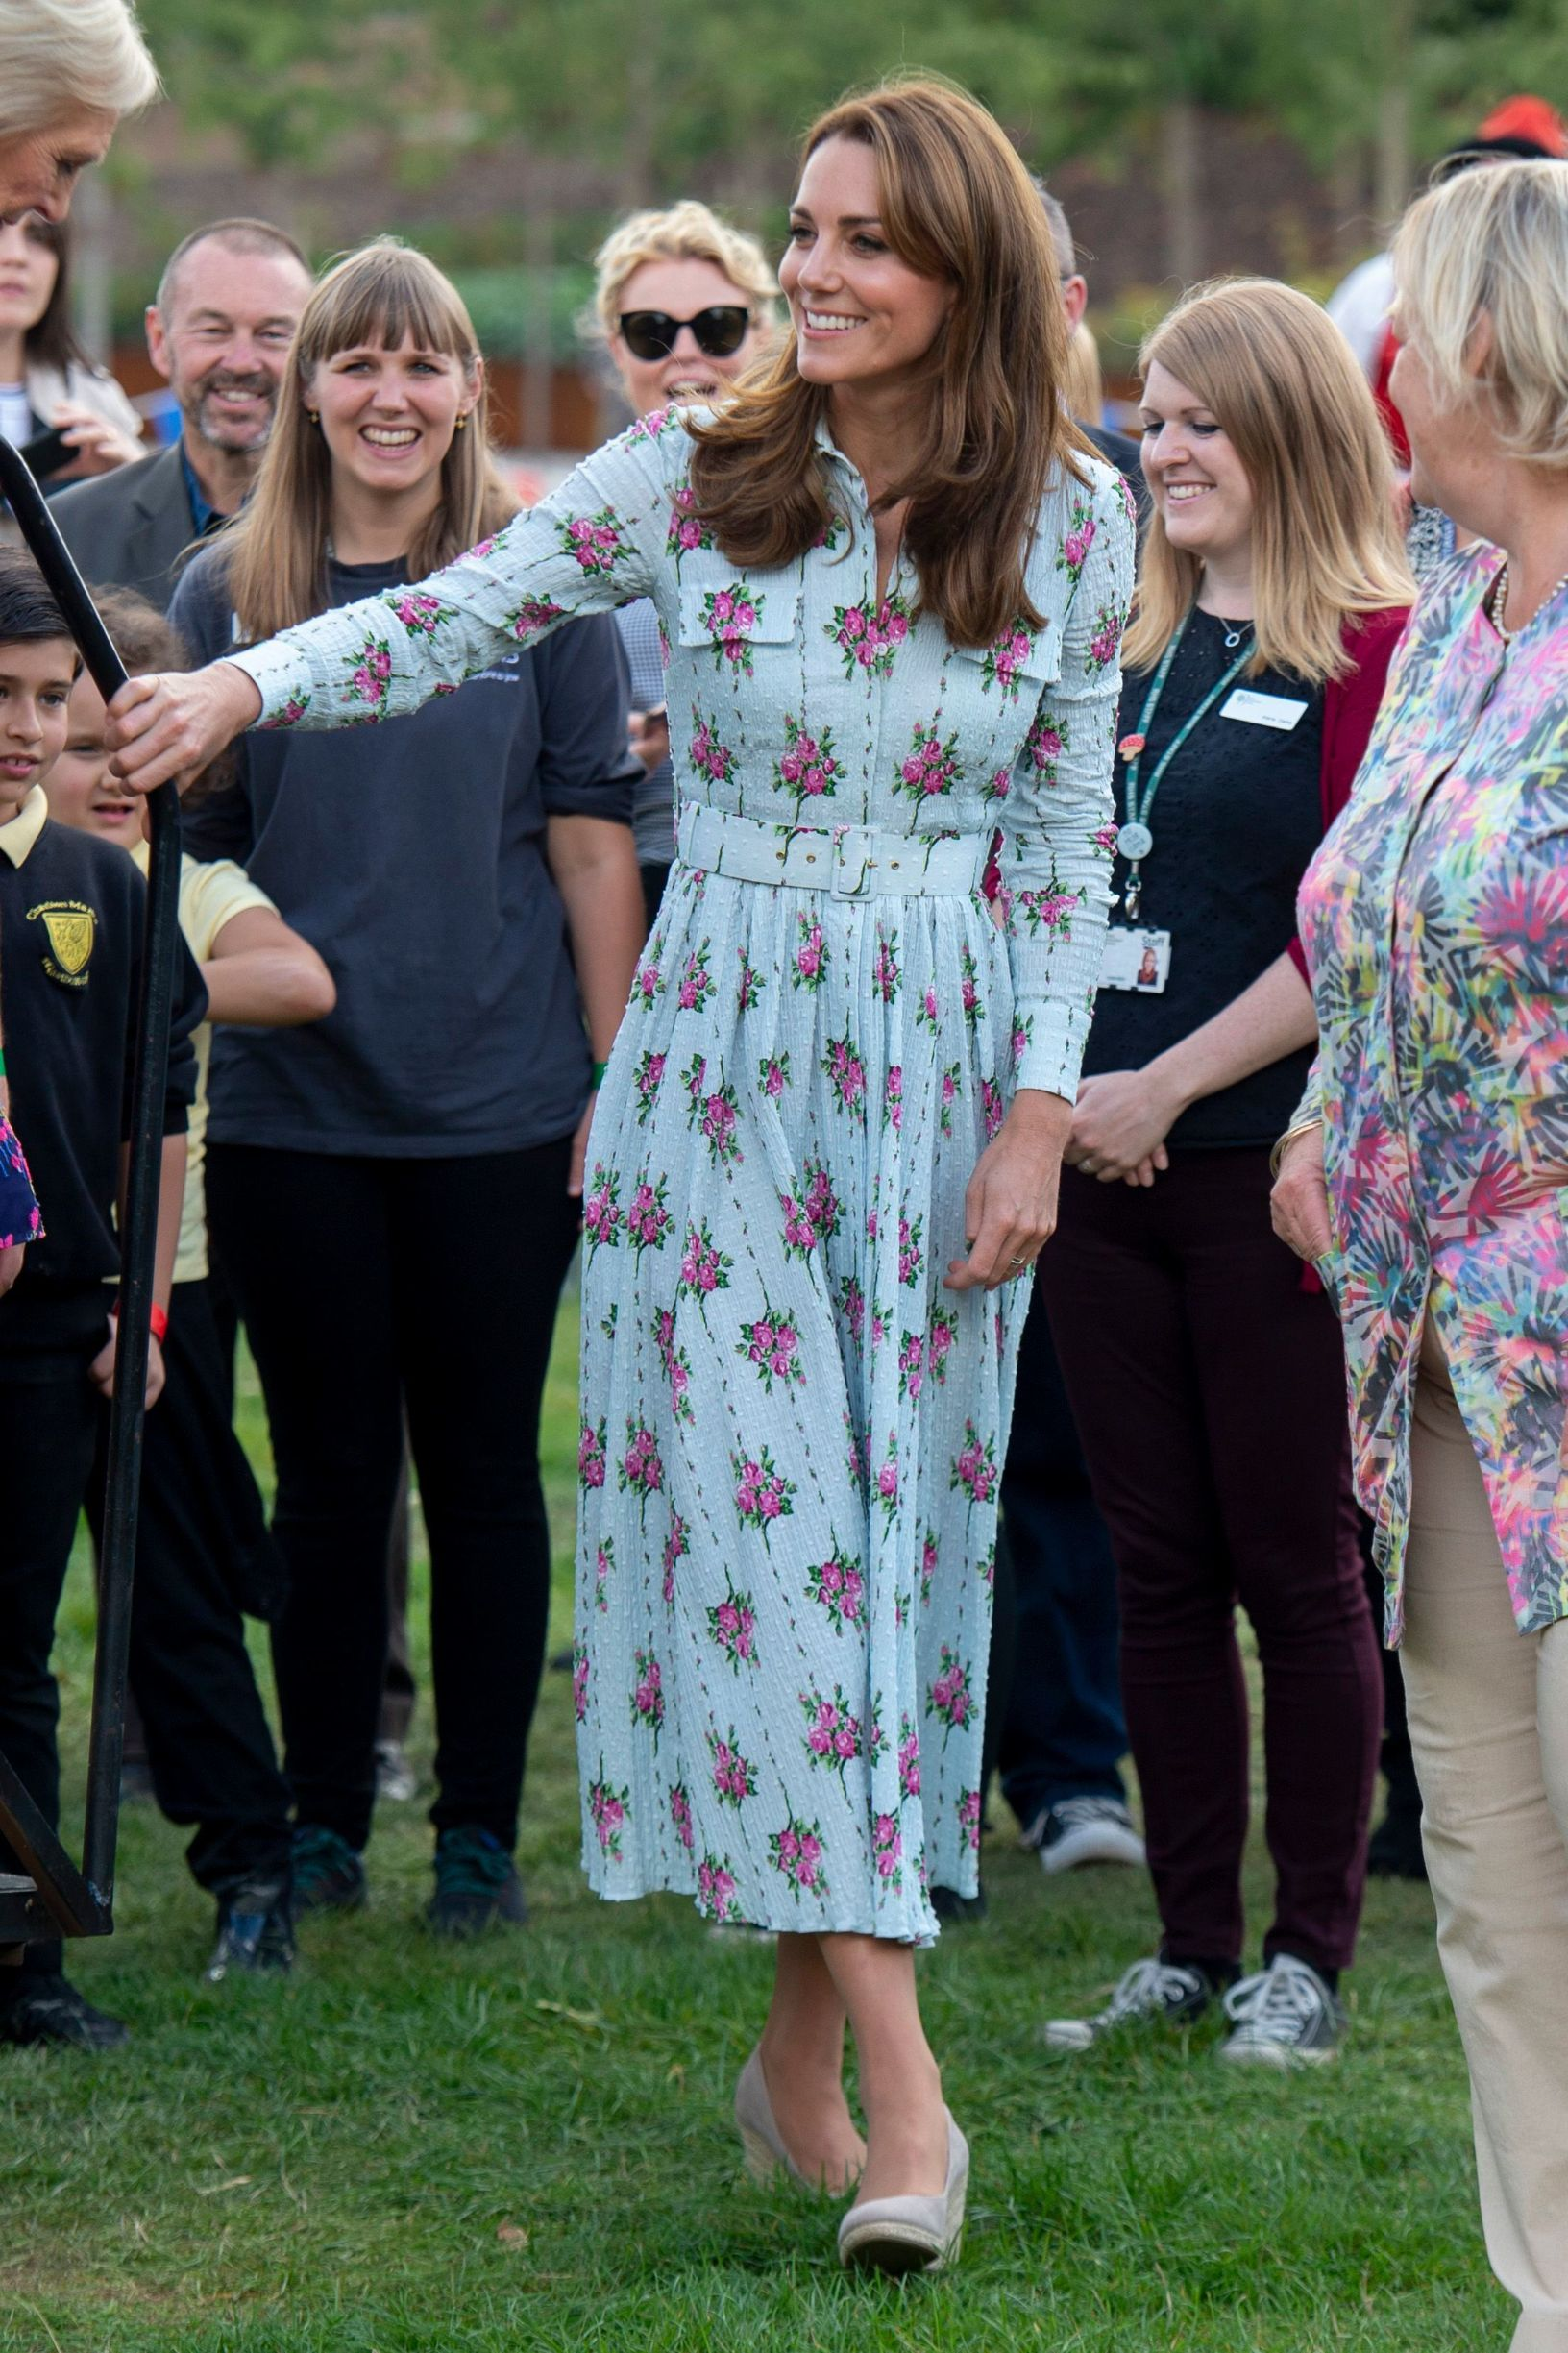 Catherine Duchess of Cambridge Back to Nature Festival, RHS Garden Wisley, Woking, UK - 10 Sep 2019,Image: 470202152, License: Rights-managed, Restrictions: , Model Release: no, Credit line: - / Shutterstock Editorial / Profimedia